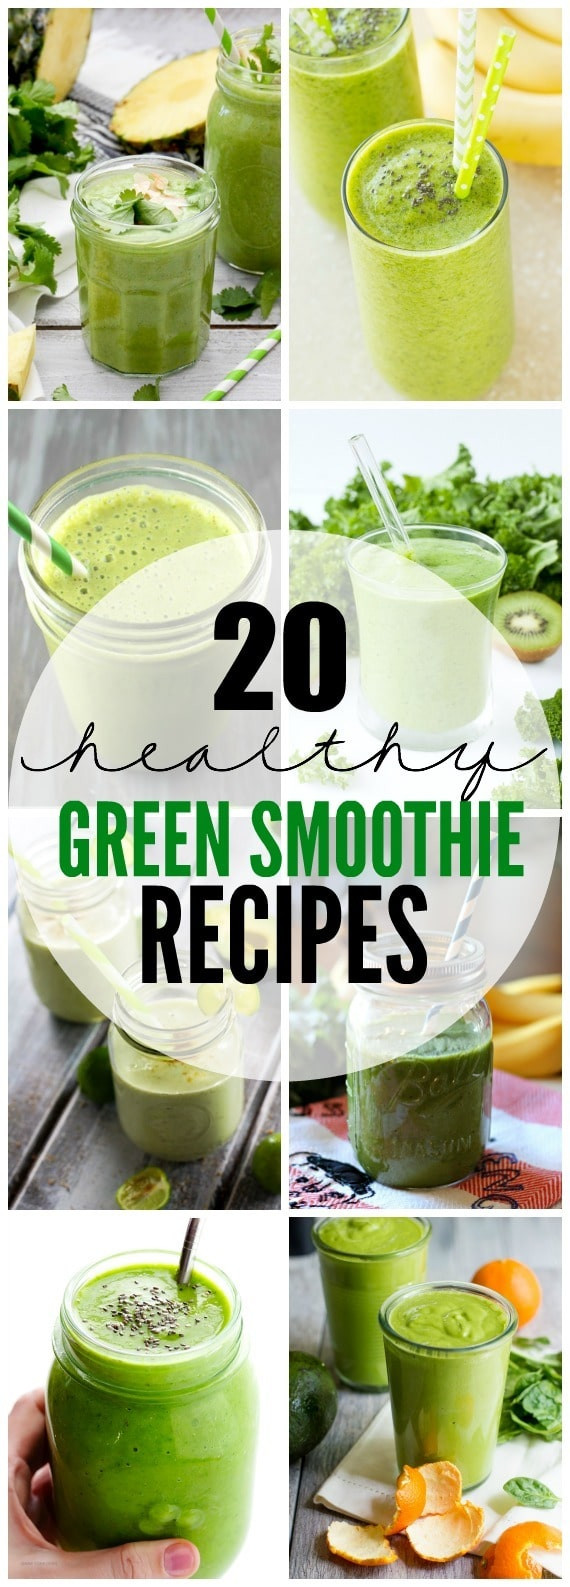 Smoothie Recipes Healthy  Foods for Children s Dental Health Health Alliance Blog